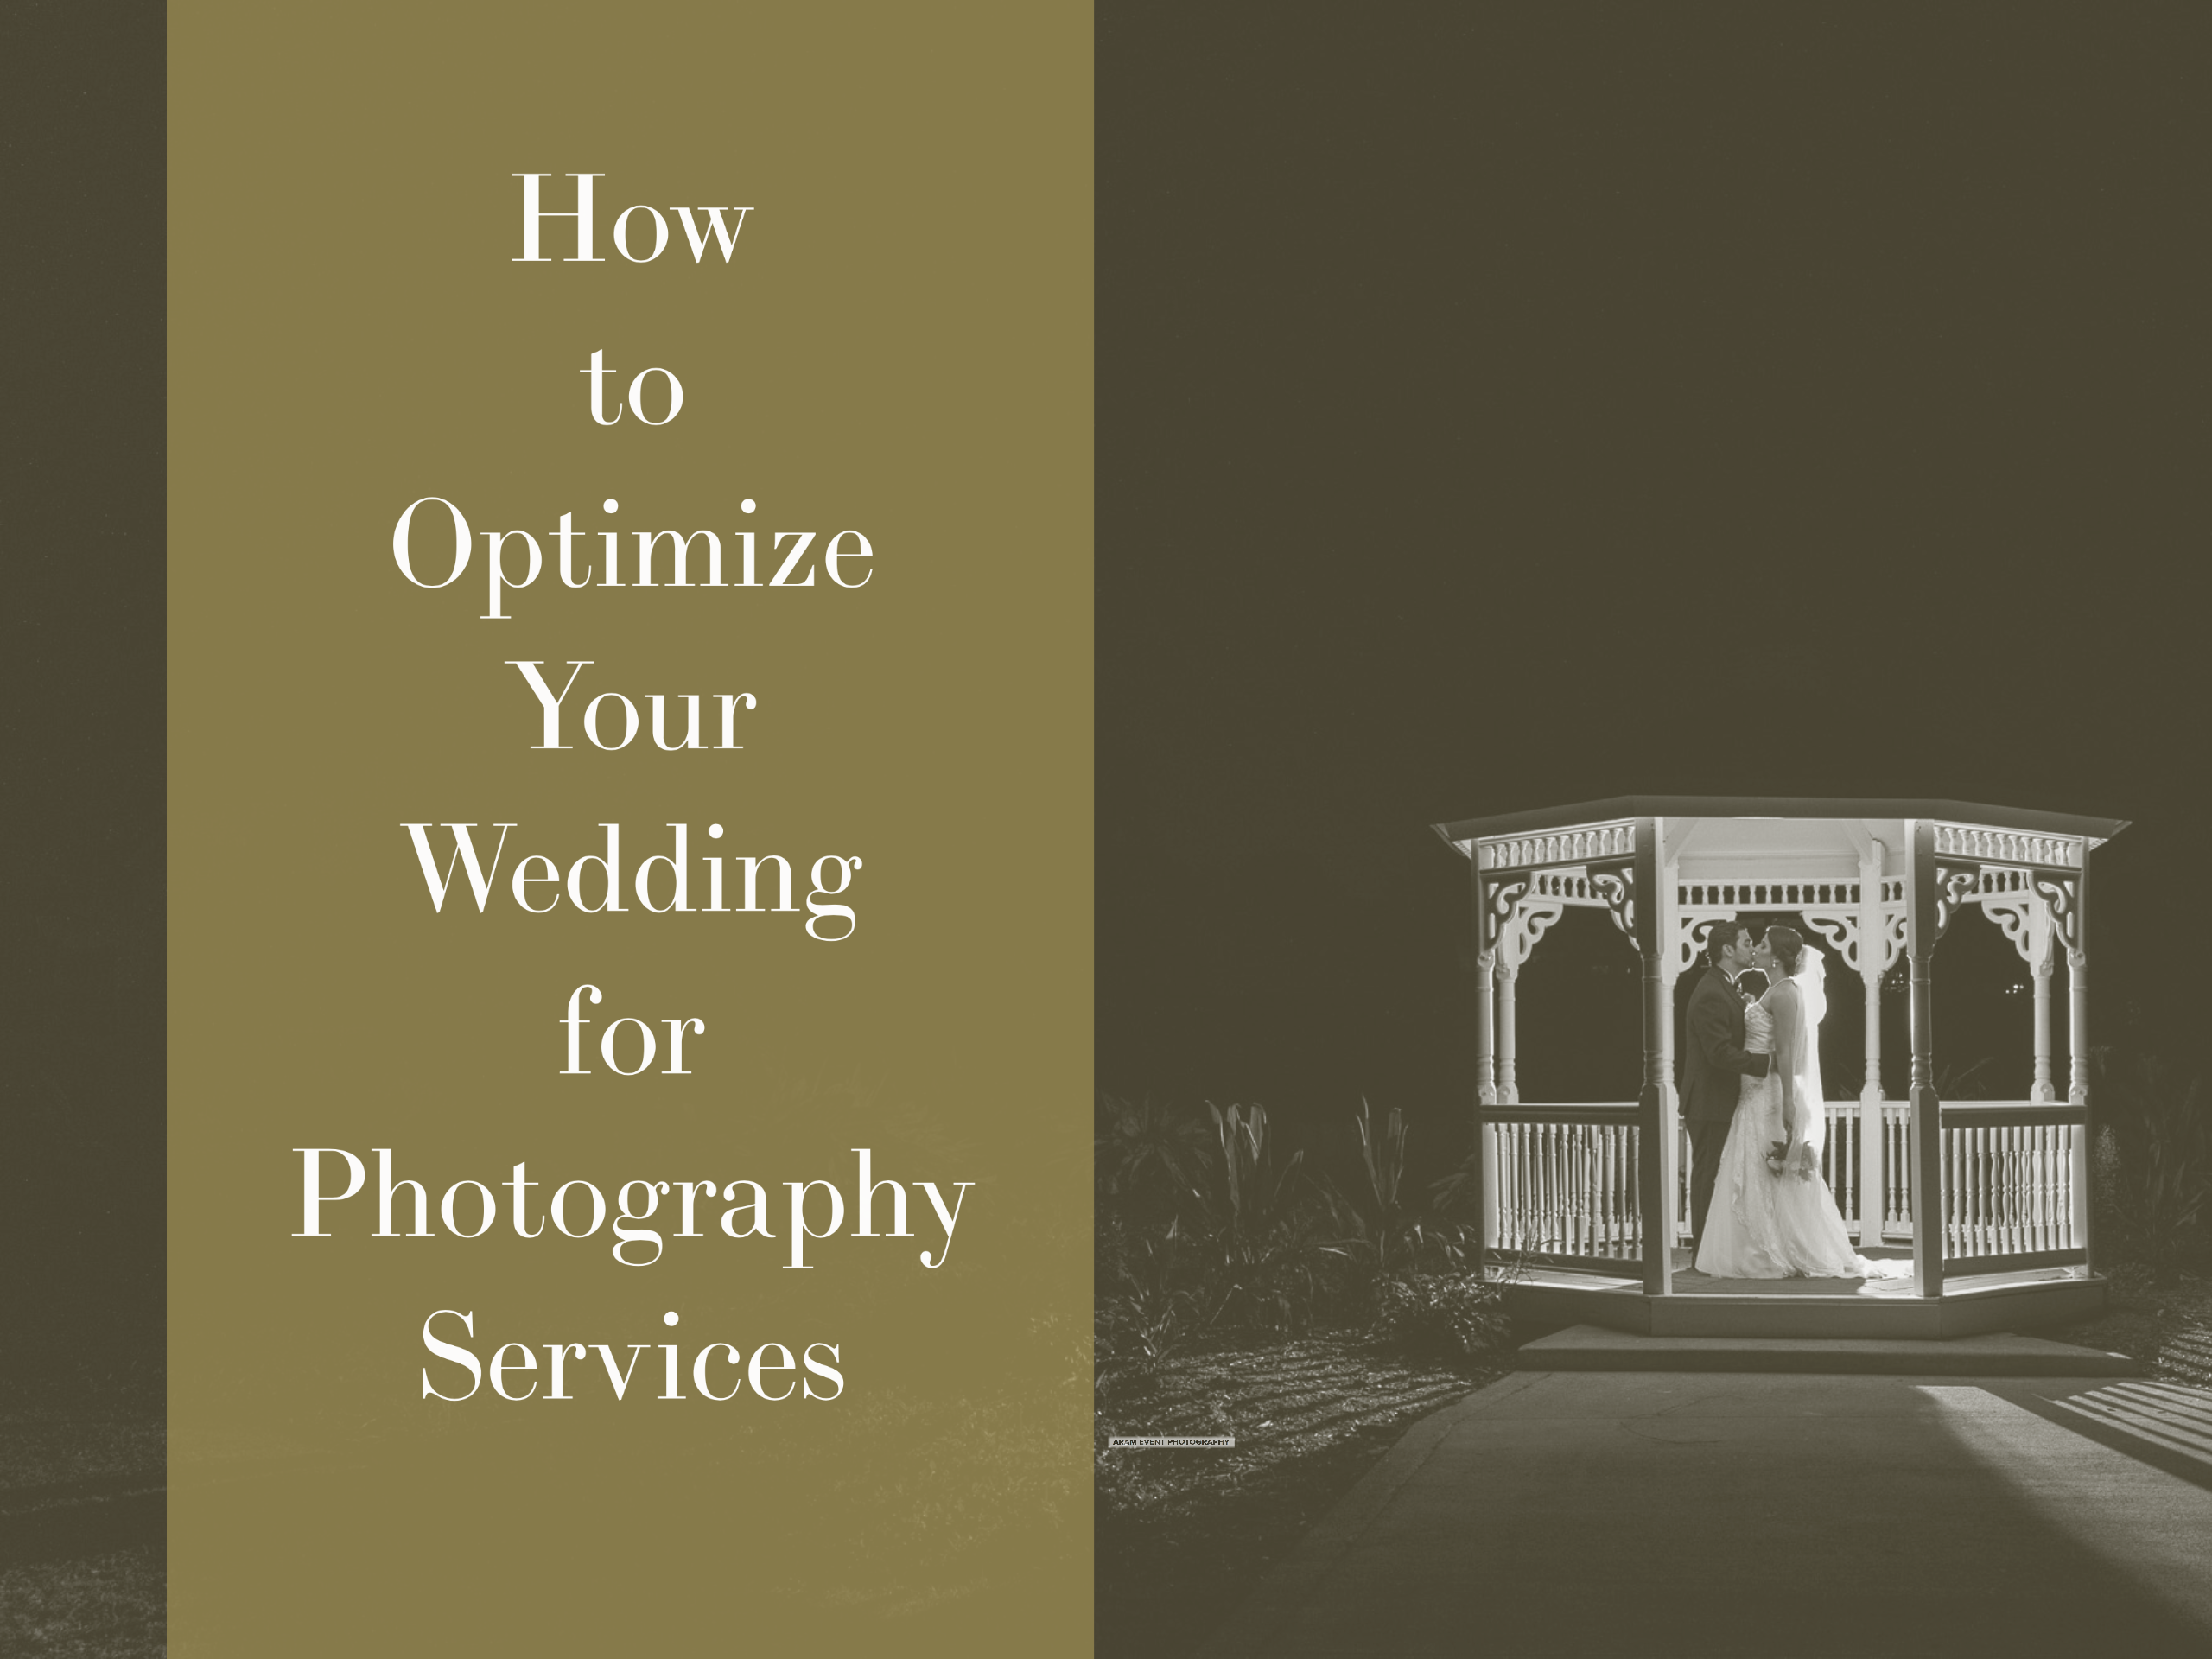 Optimize Your Wedding